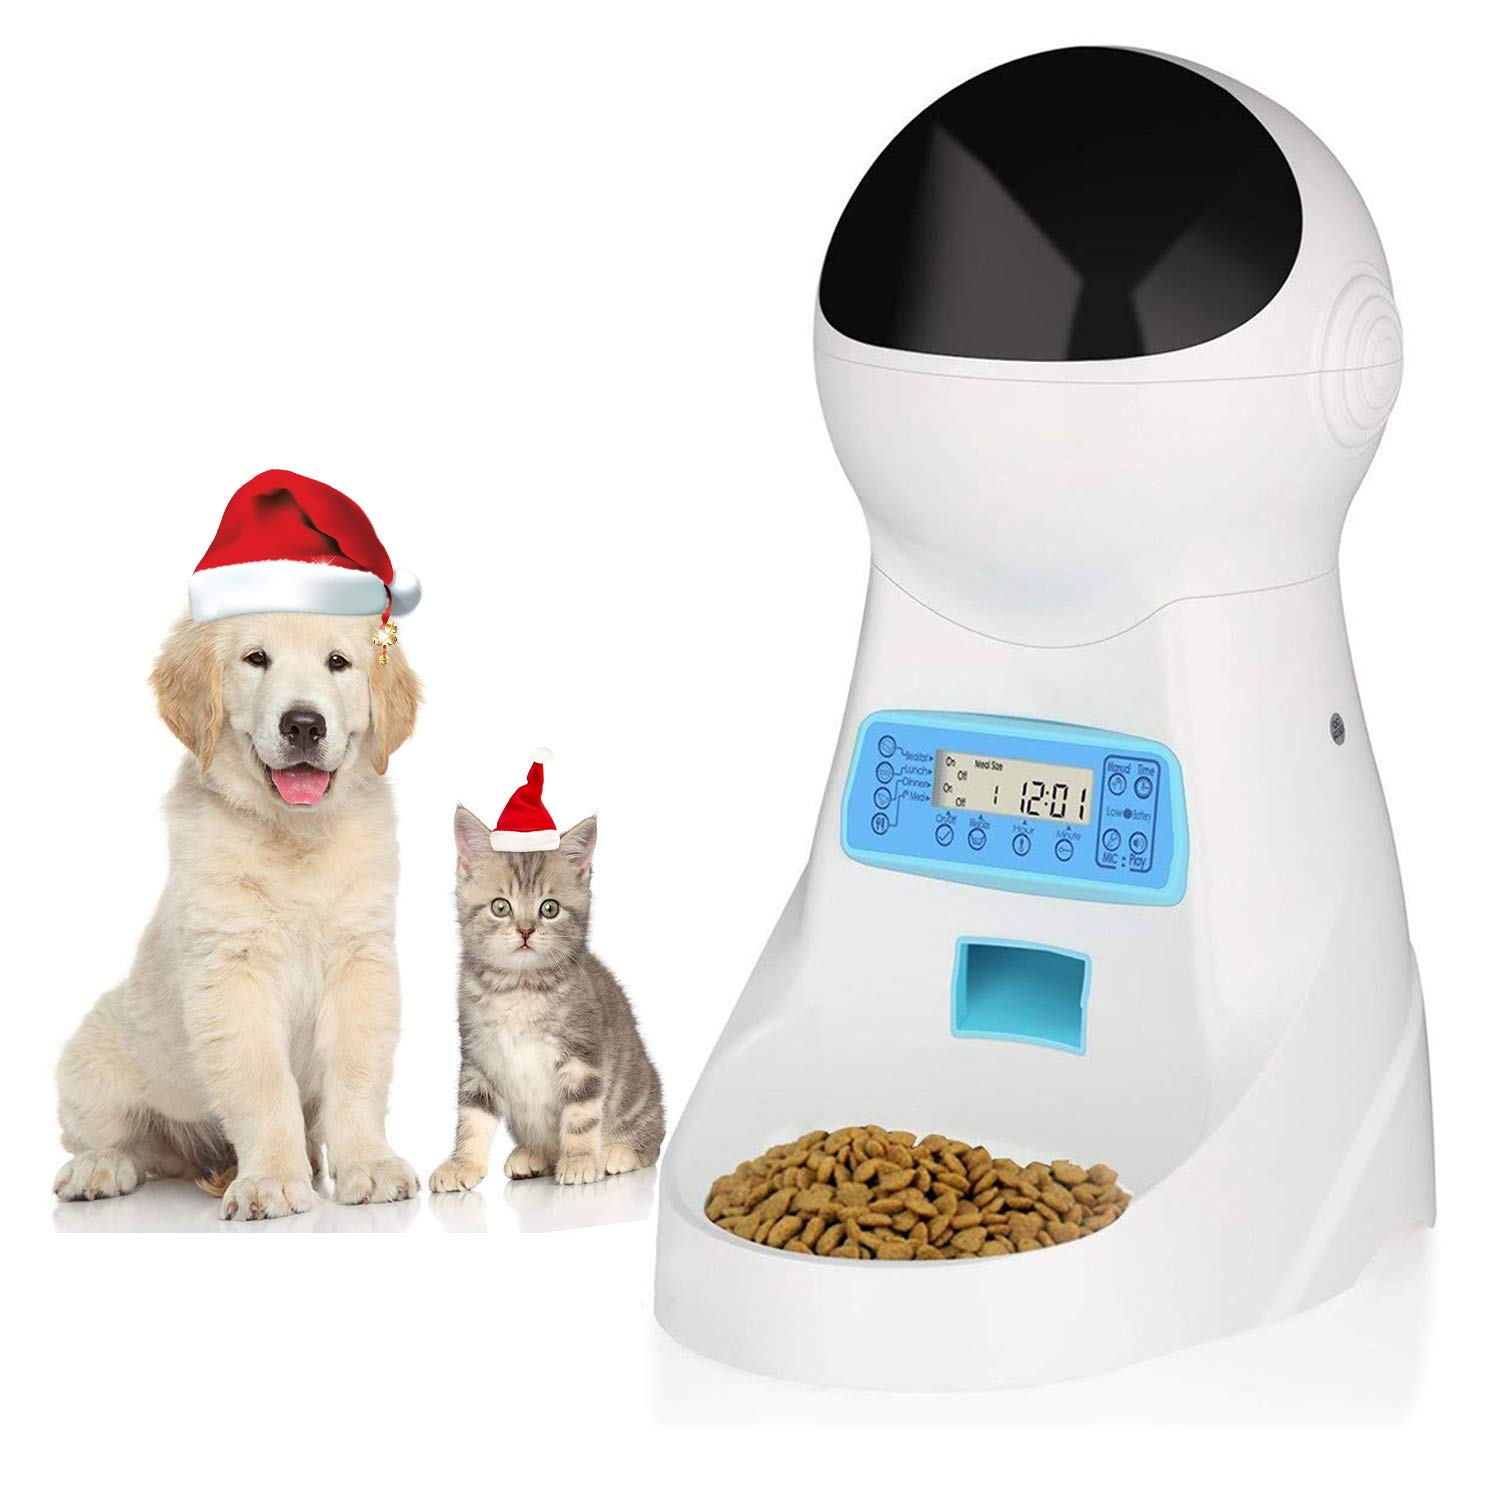 amzdeal Automatic Cat Feeder Pet Feeder Dog Food Dispenser with Time and Meal Size Programmable LCD Display and Meal Call Recorder Up to 4 Meals A Day